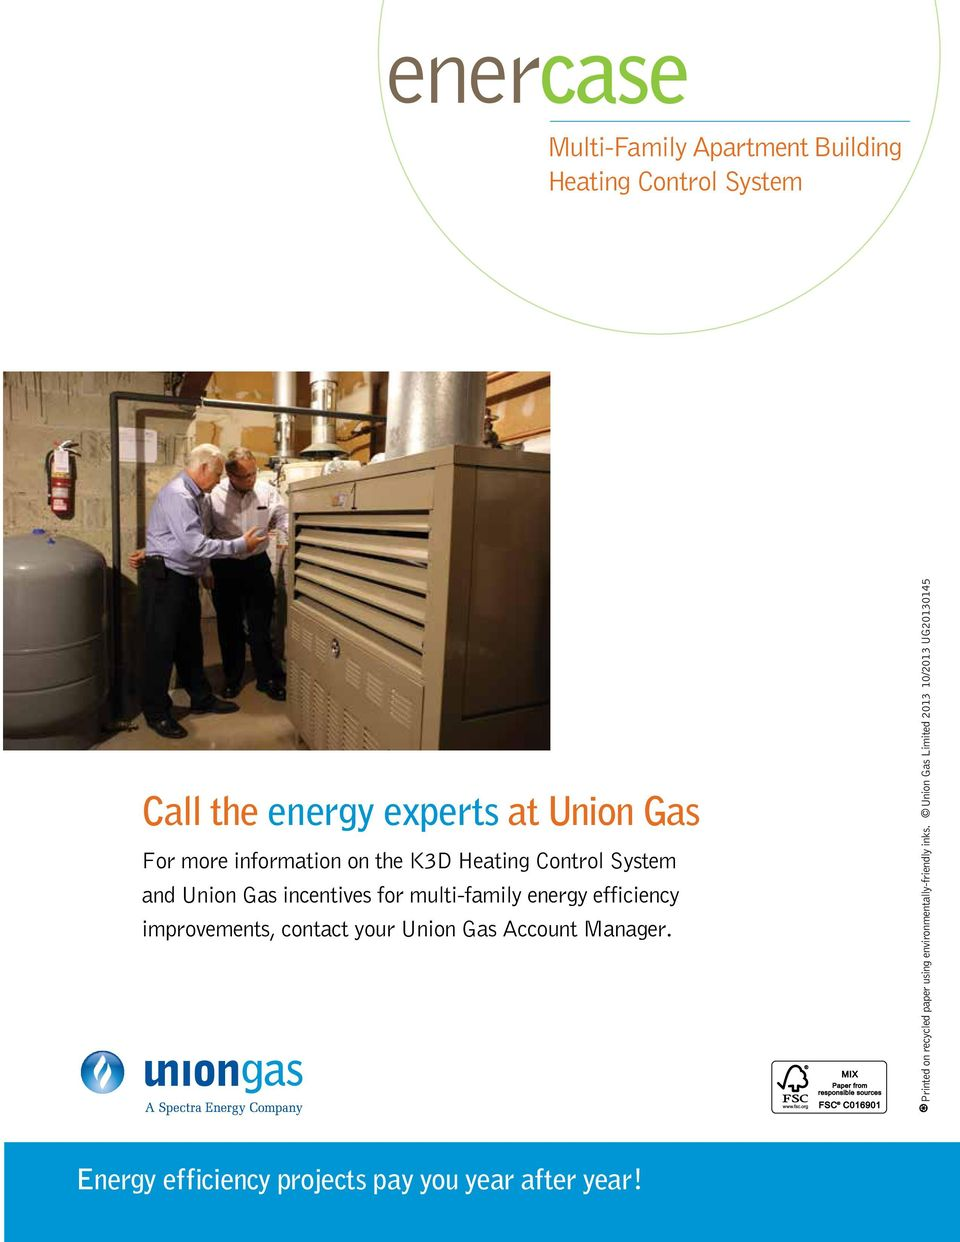 efficiency improvements, contact your Union Gas Account Manager.